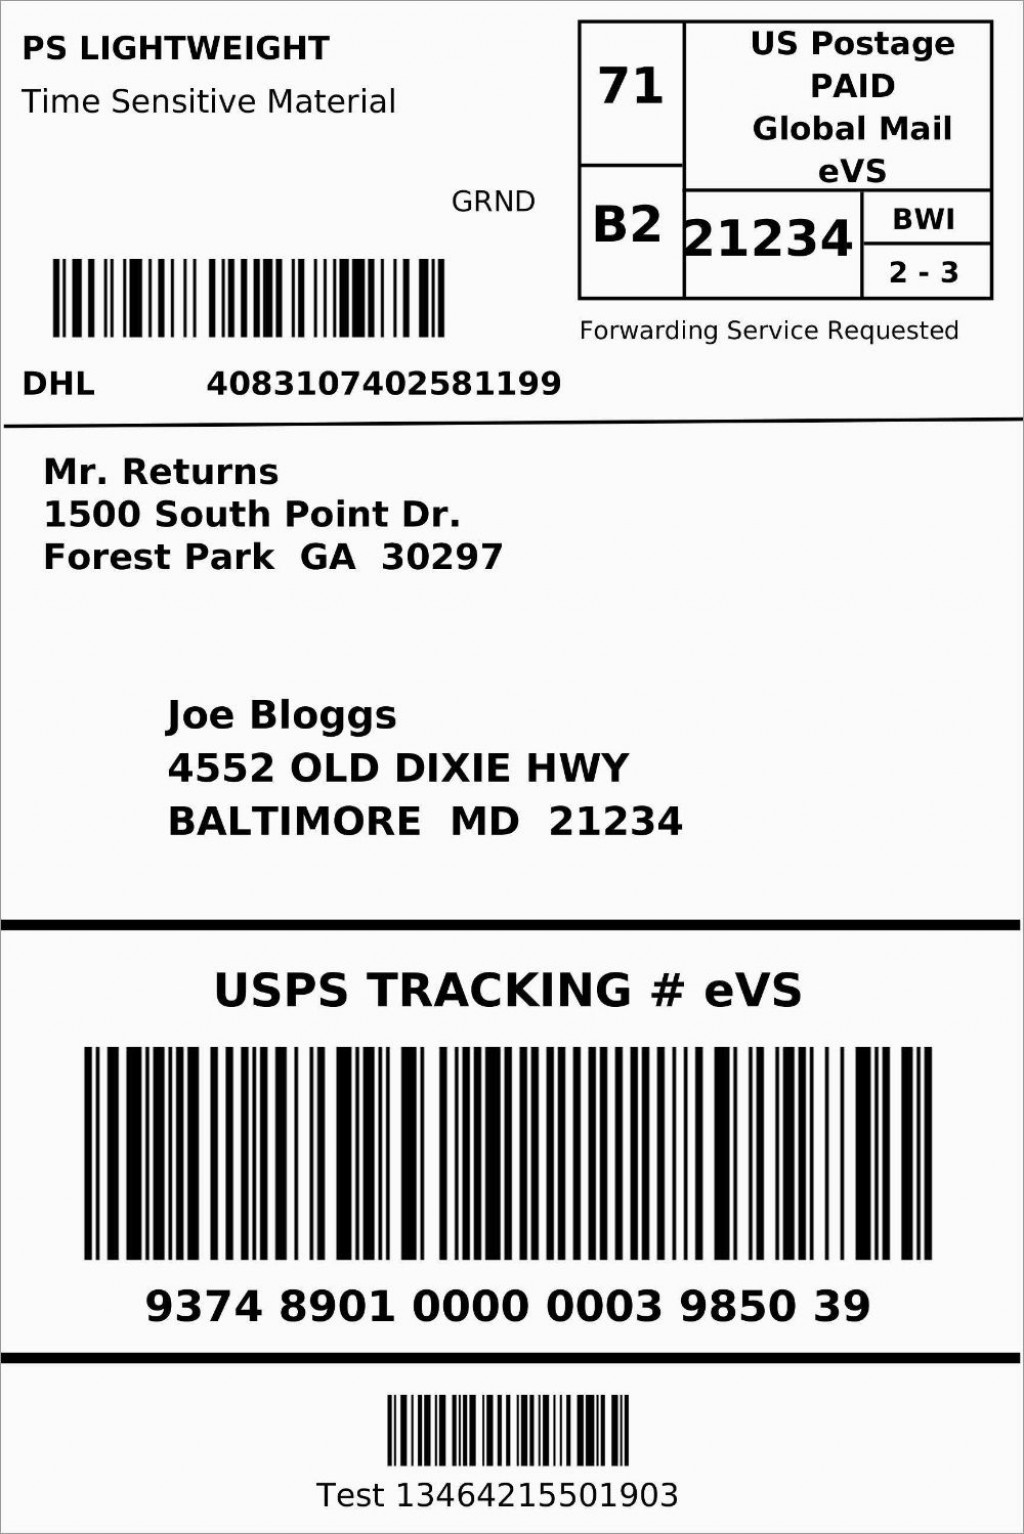 002 Amazing Free Shipping Label Template Image  Format Word For MacLarge